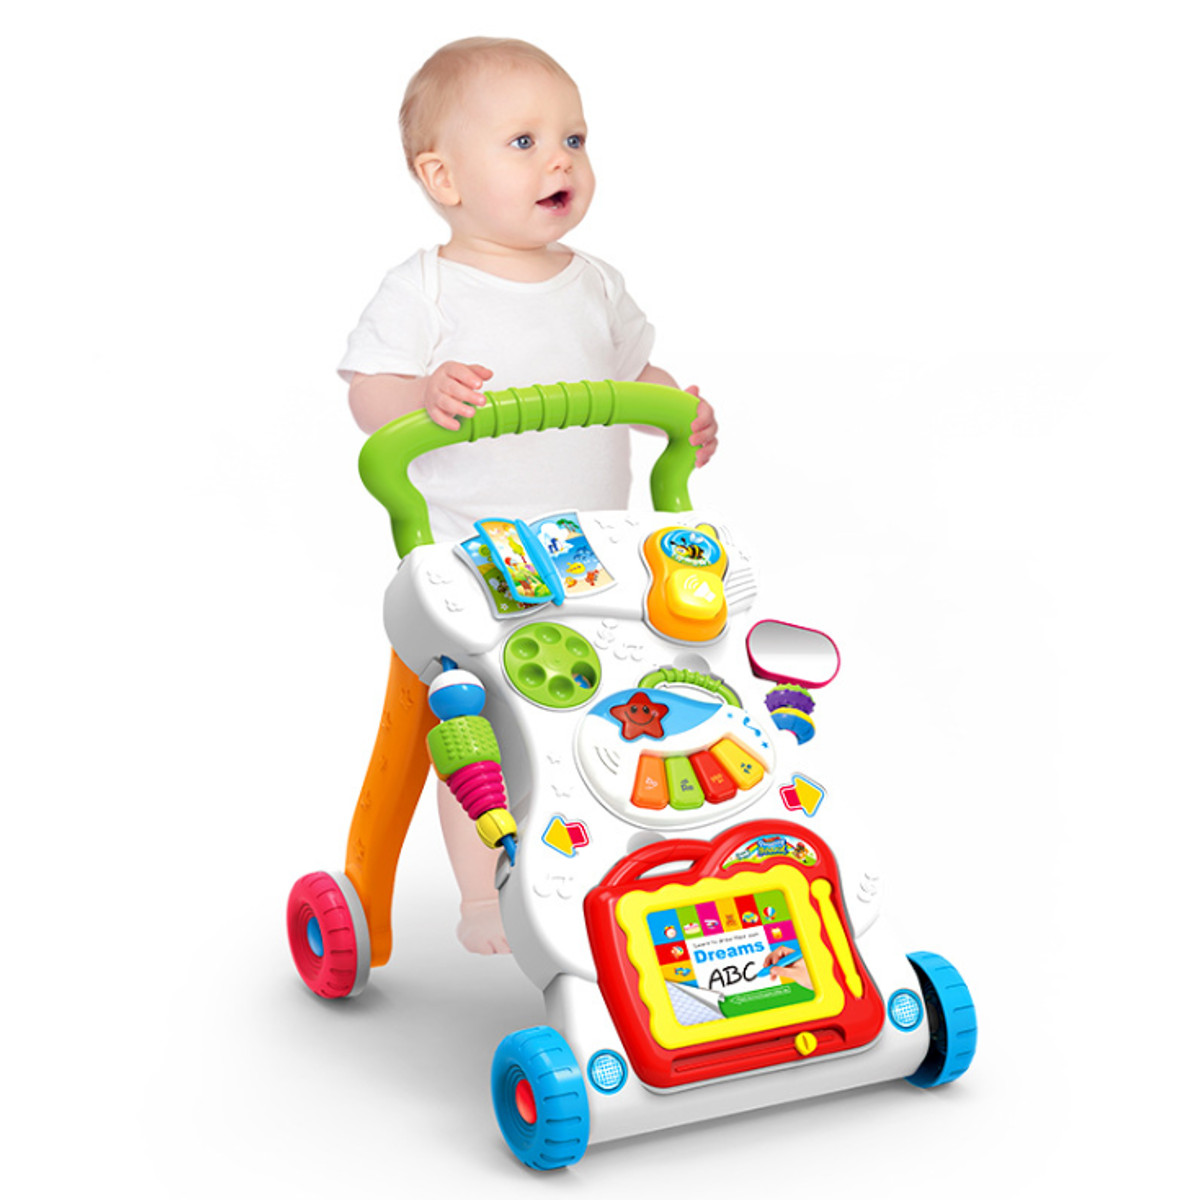 Multifunctional Baby Walker Infant Stand-To-Sit Toddler Four Wheels Learning Walking Toys Piano Drawing Gift for 6-12 Months